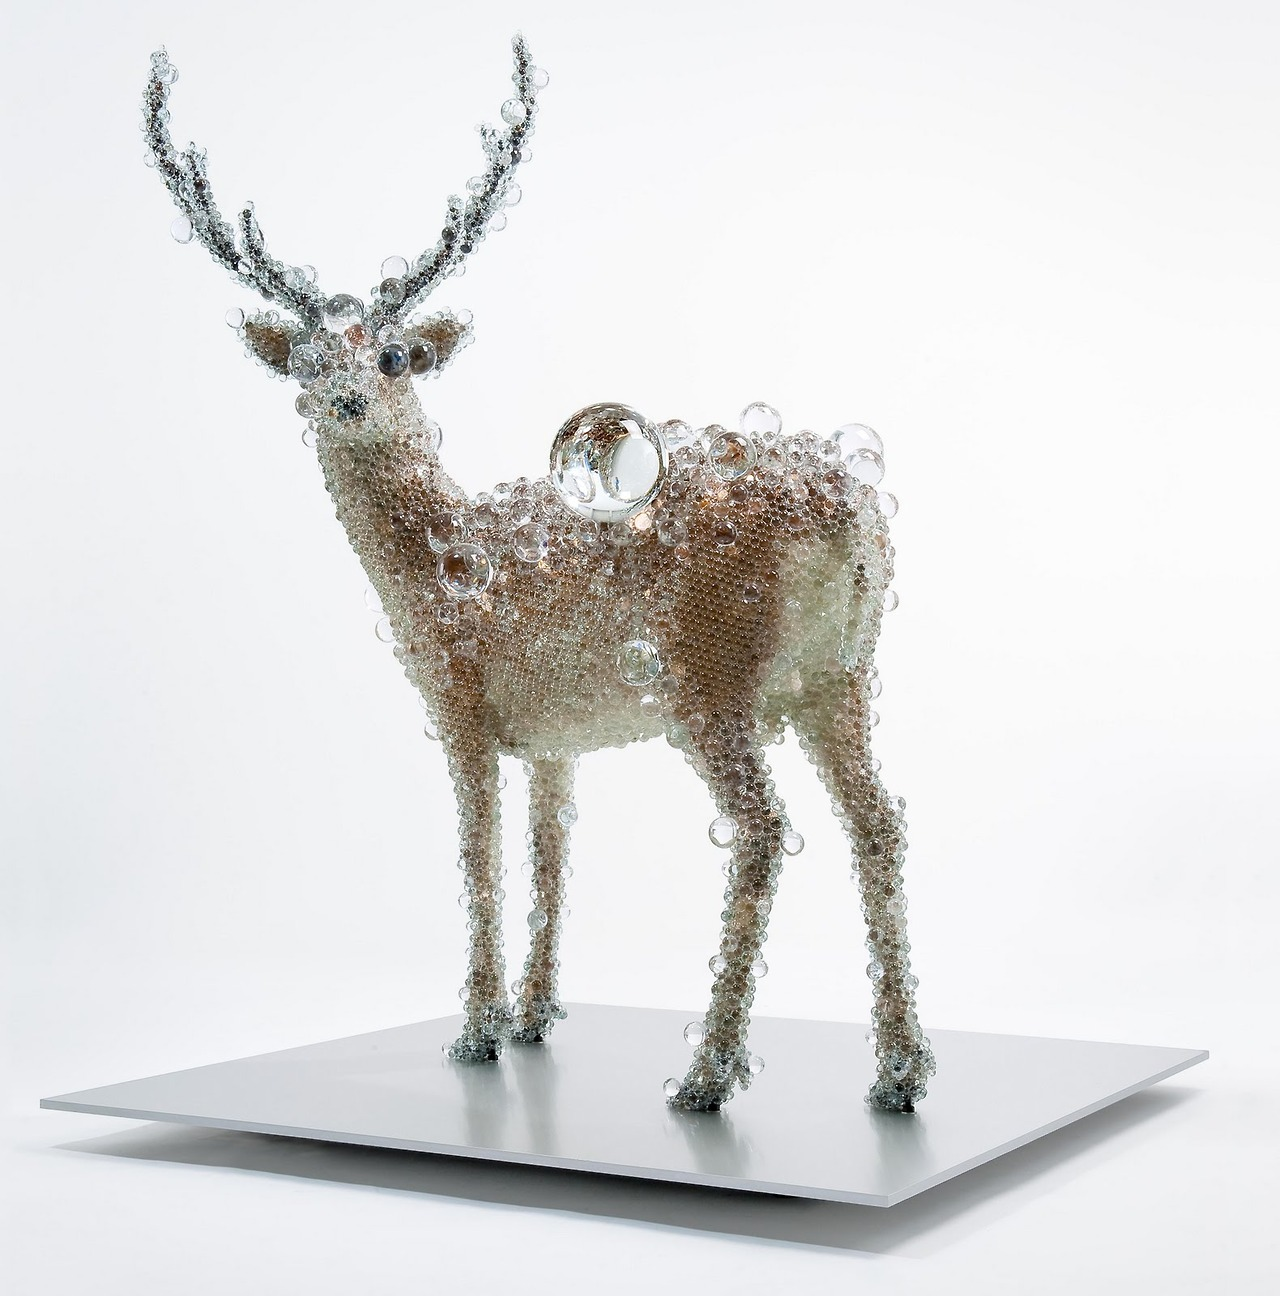 Taxidermy Sculptures by Kohei Nawa -Cerf